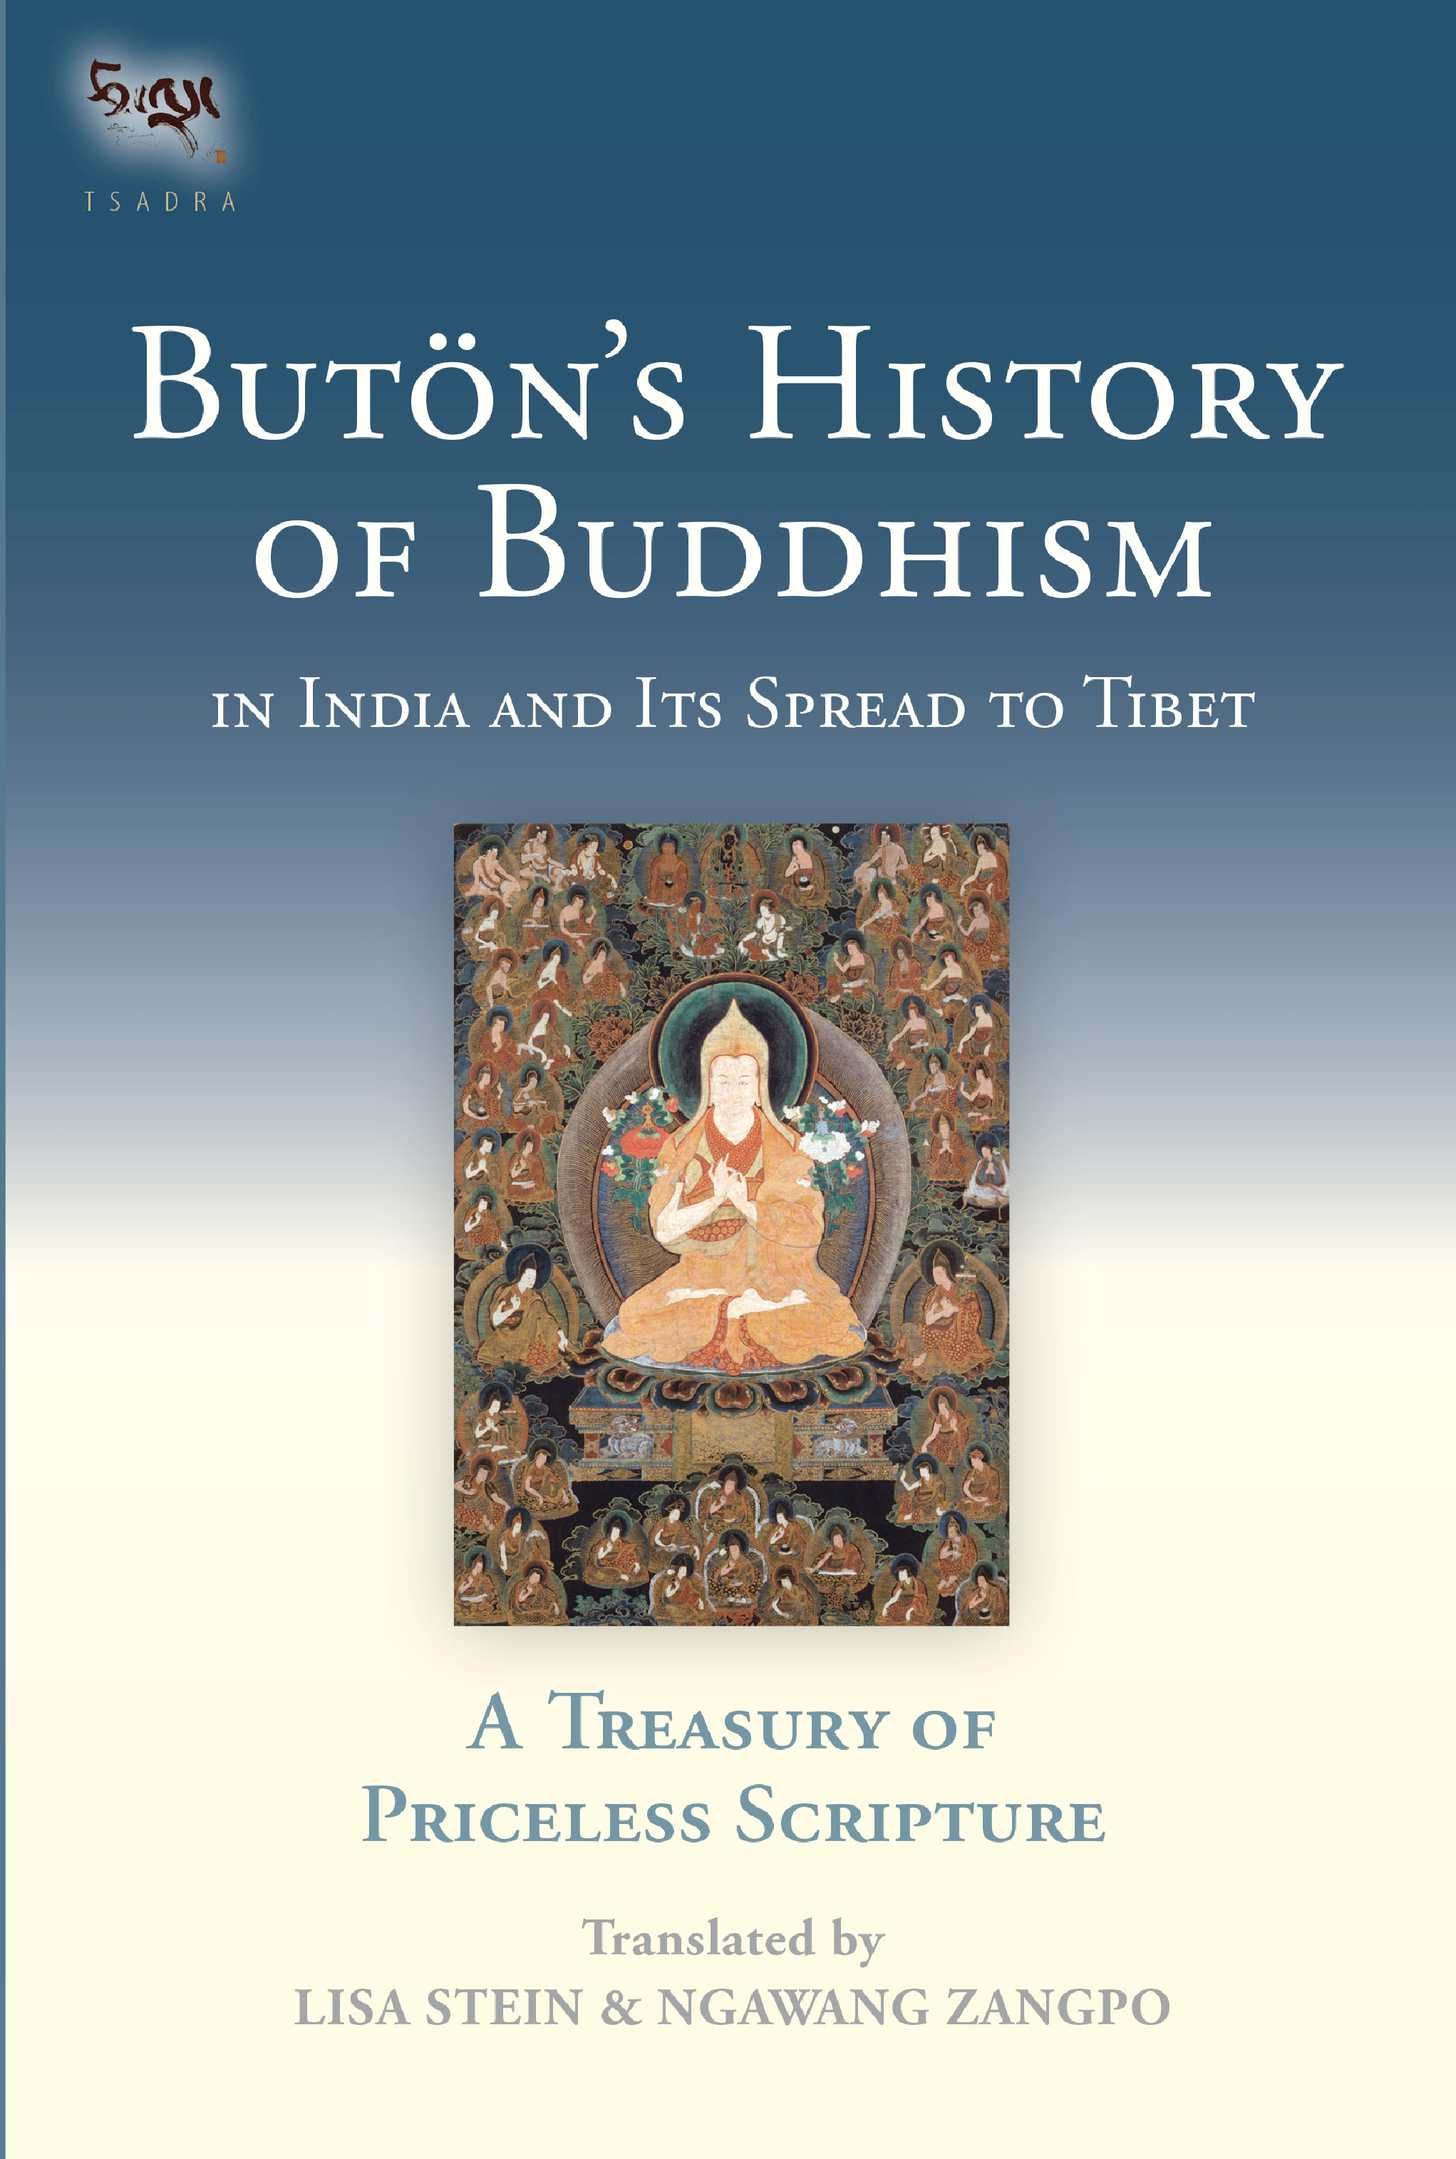 a history of buddhism and its philosophy Buddhist philosophy refers to the philosophical investigations and systems of inquiry that developed among various buddhist schools in india following the death of the buddha and later spread.